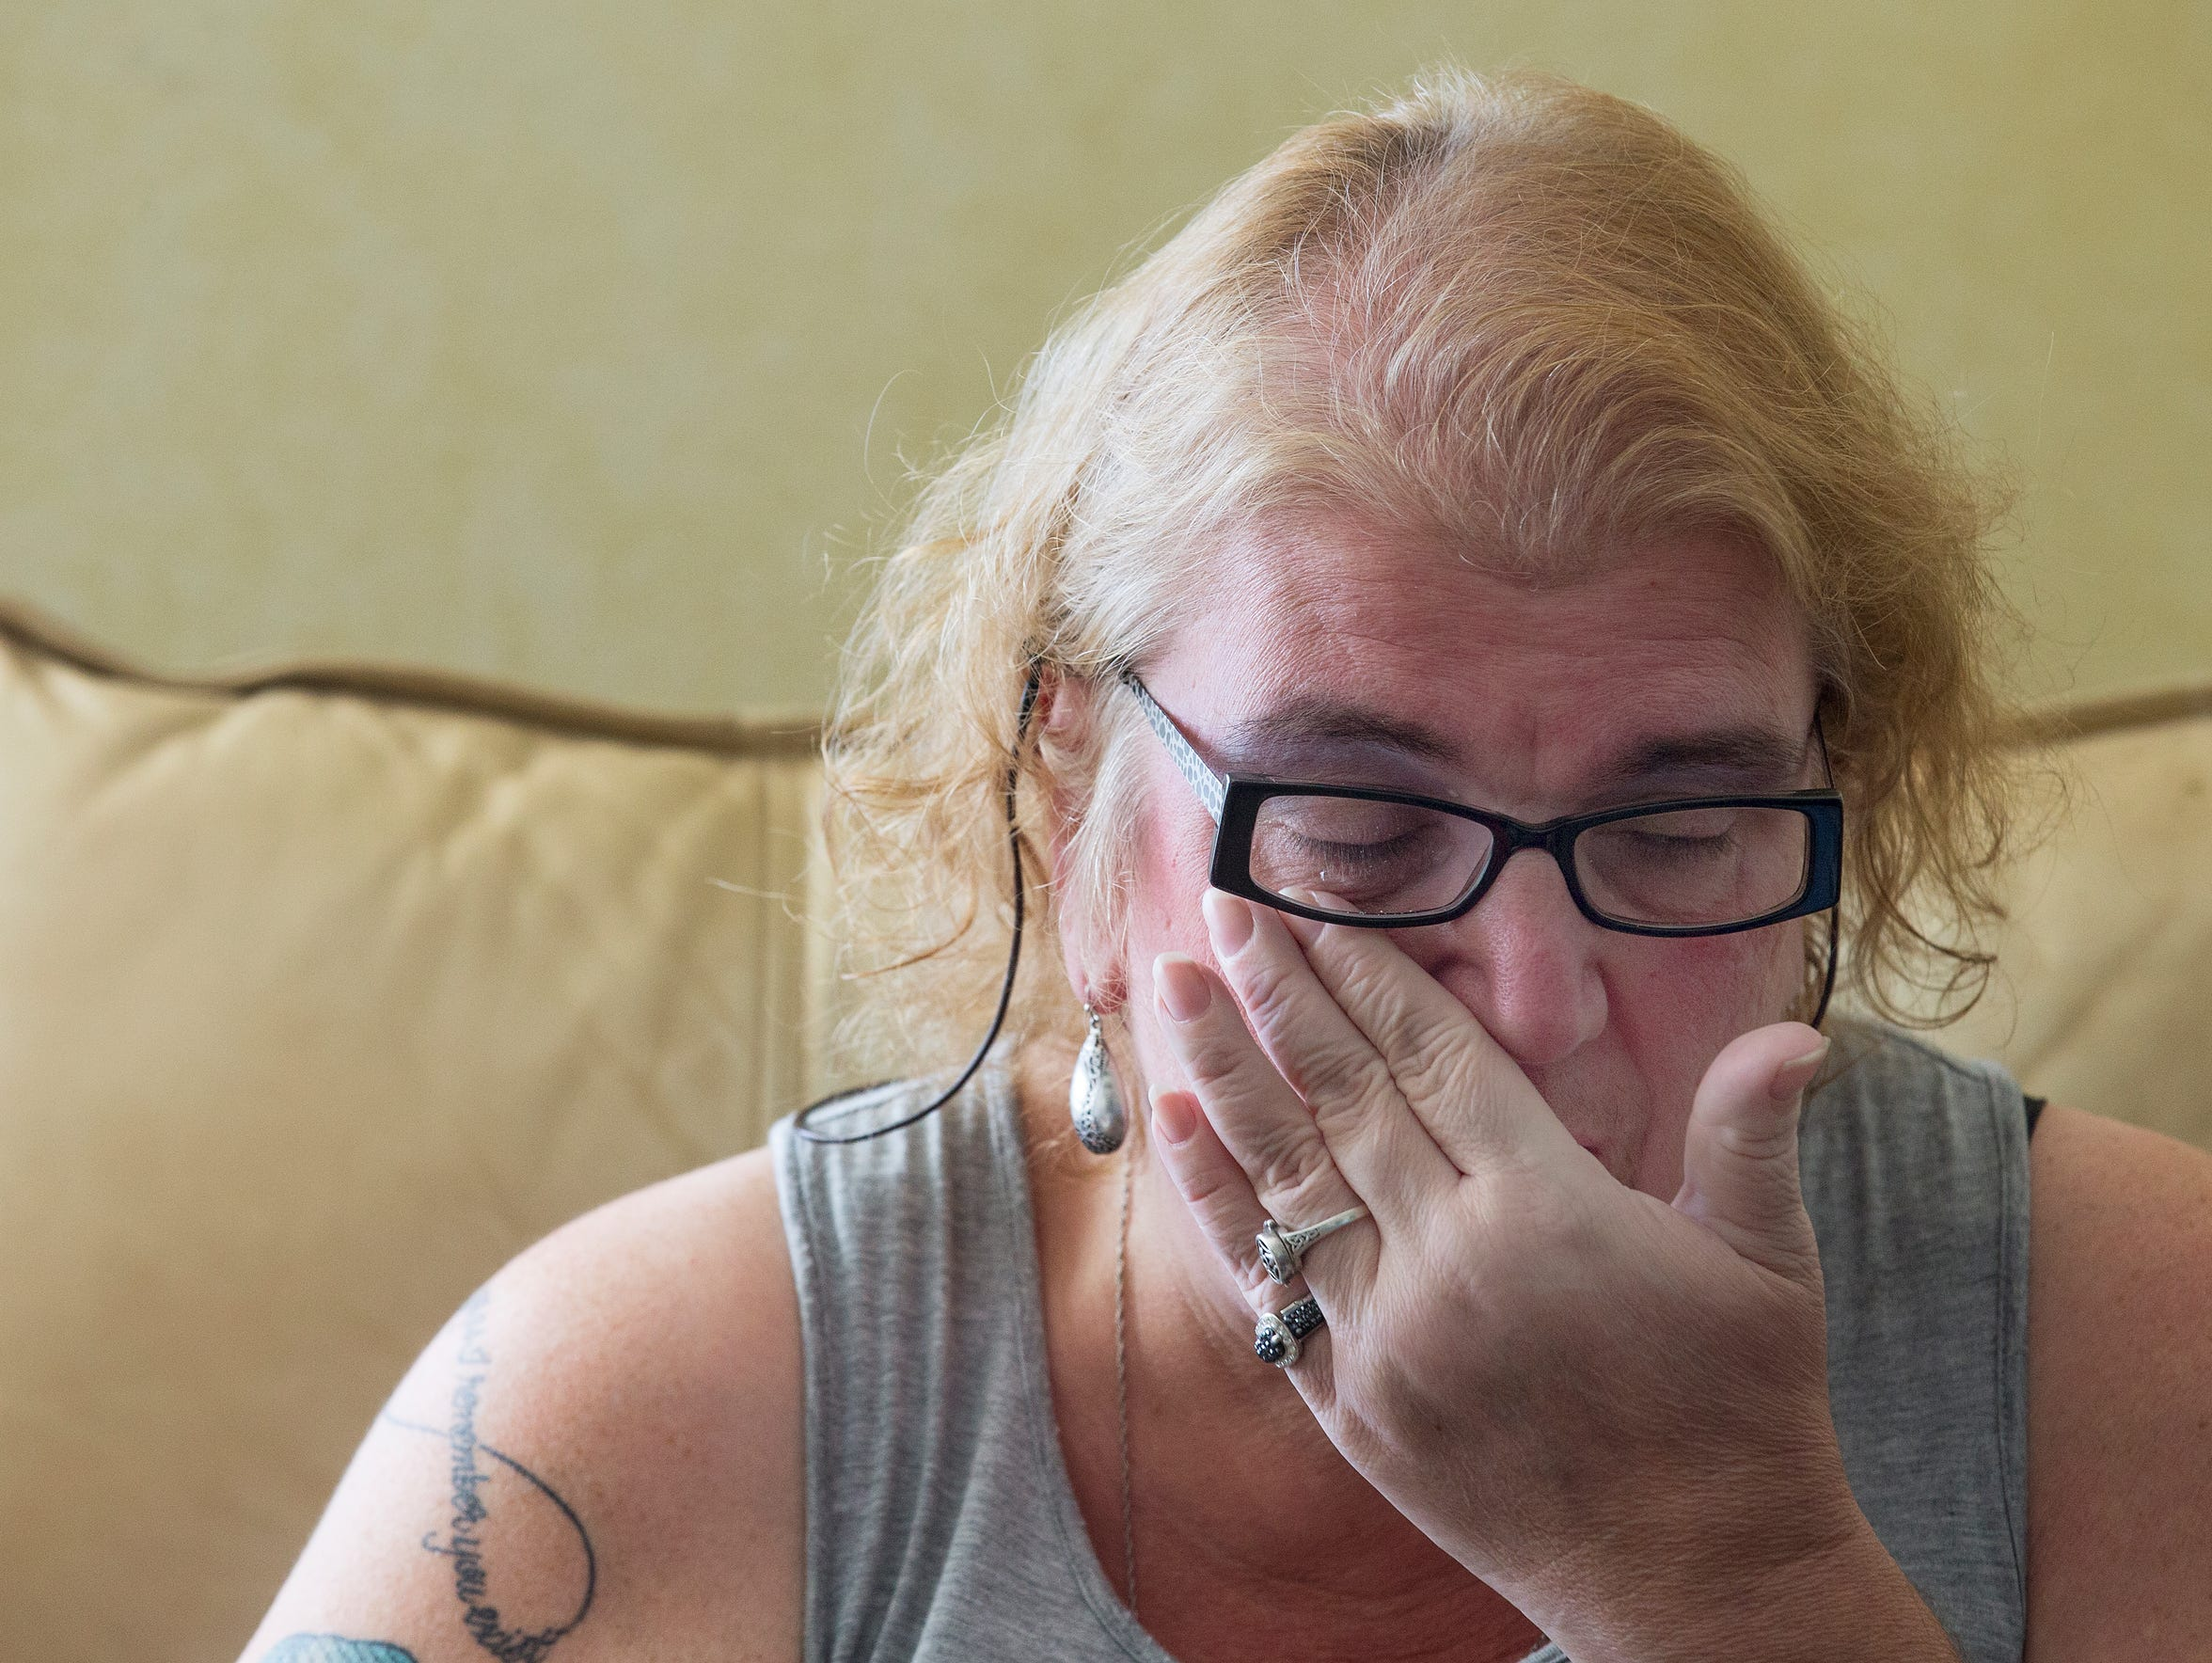 Cindi Byersmith wipes a tear away from her eye as she